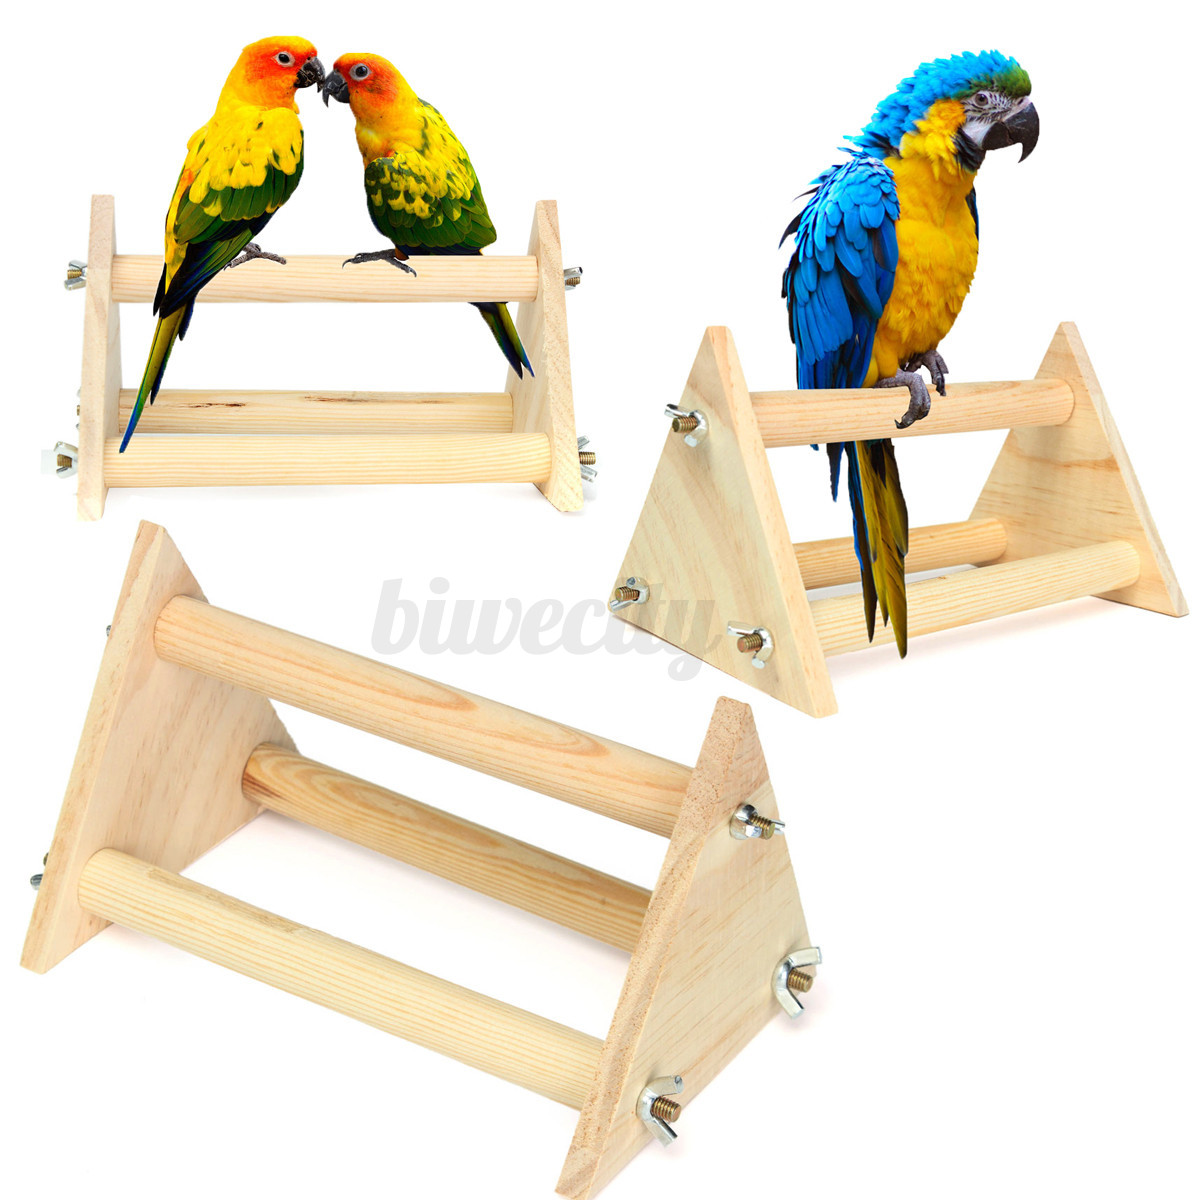 Very Impressive portraiture of Details about Wooden Parrot Bird Perch Stand Top Rack Play Funny Toys  with #C5A406 color and 1200x1200 pixels